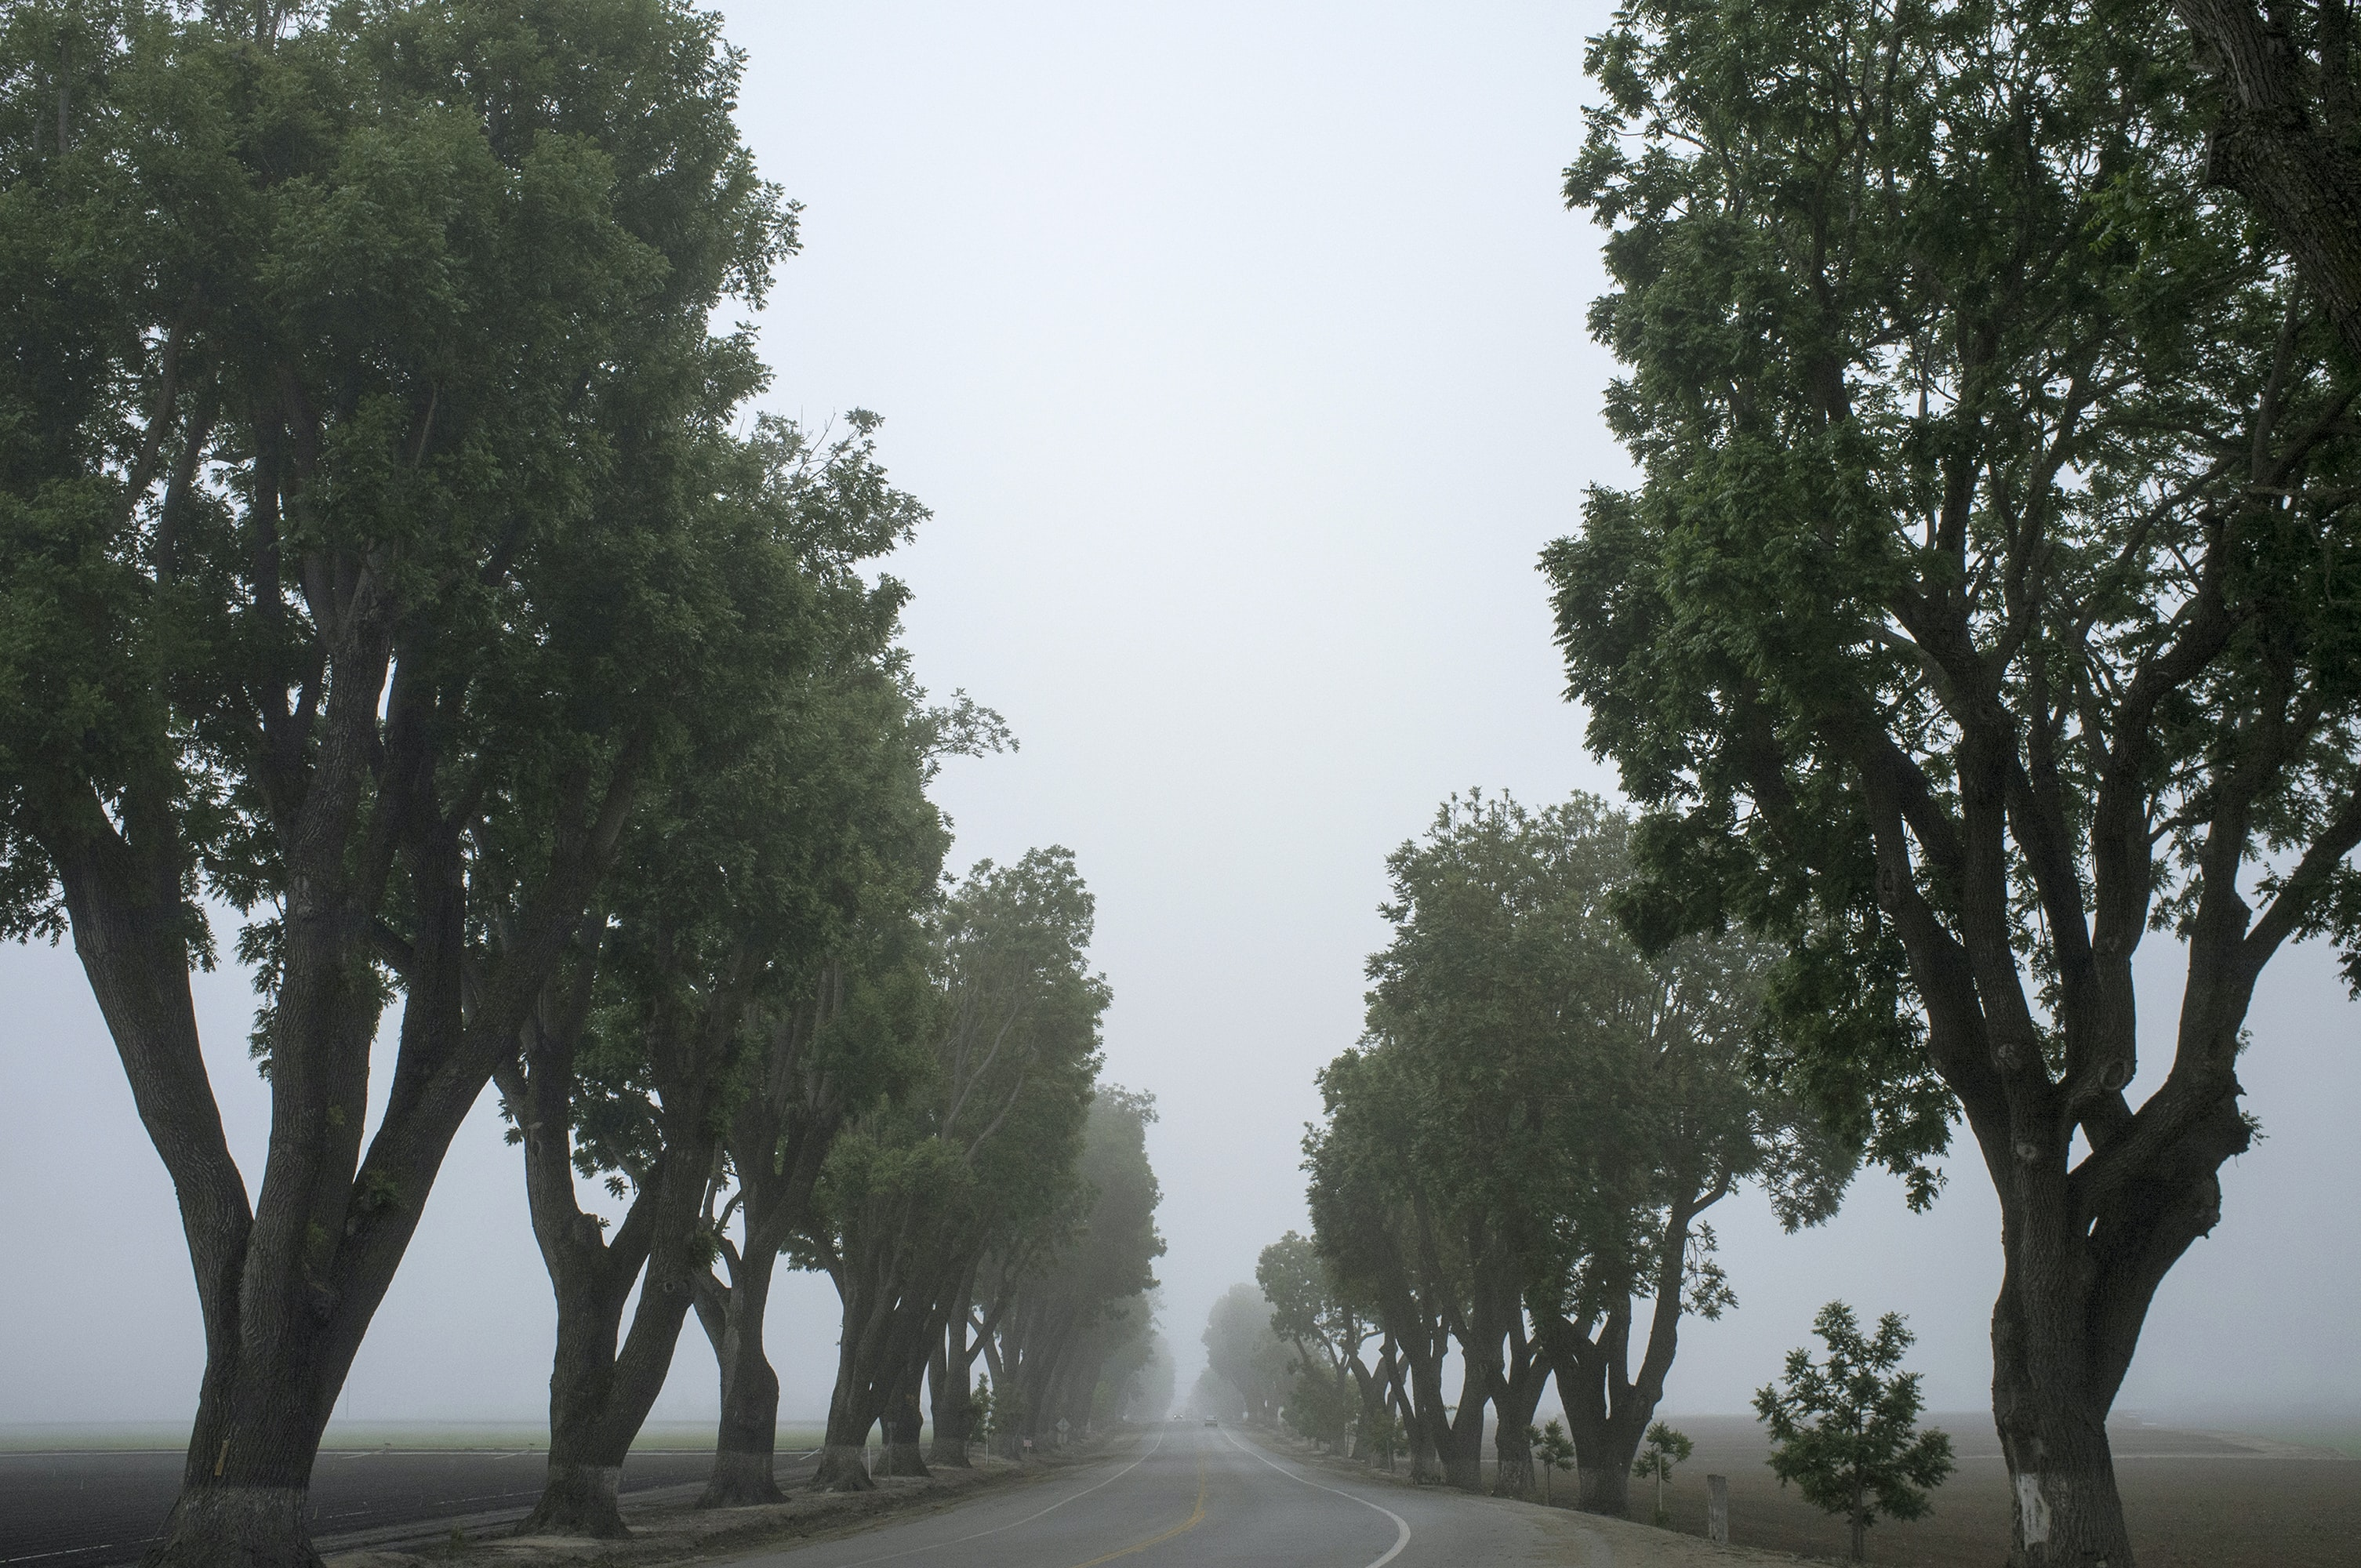 A misty sky over an isolated country road